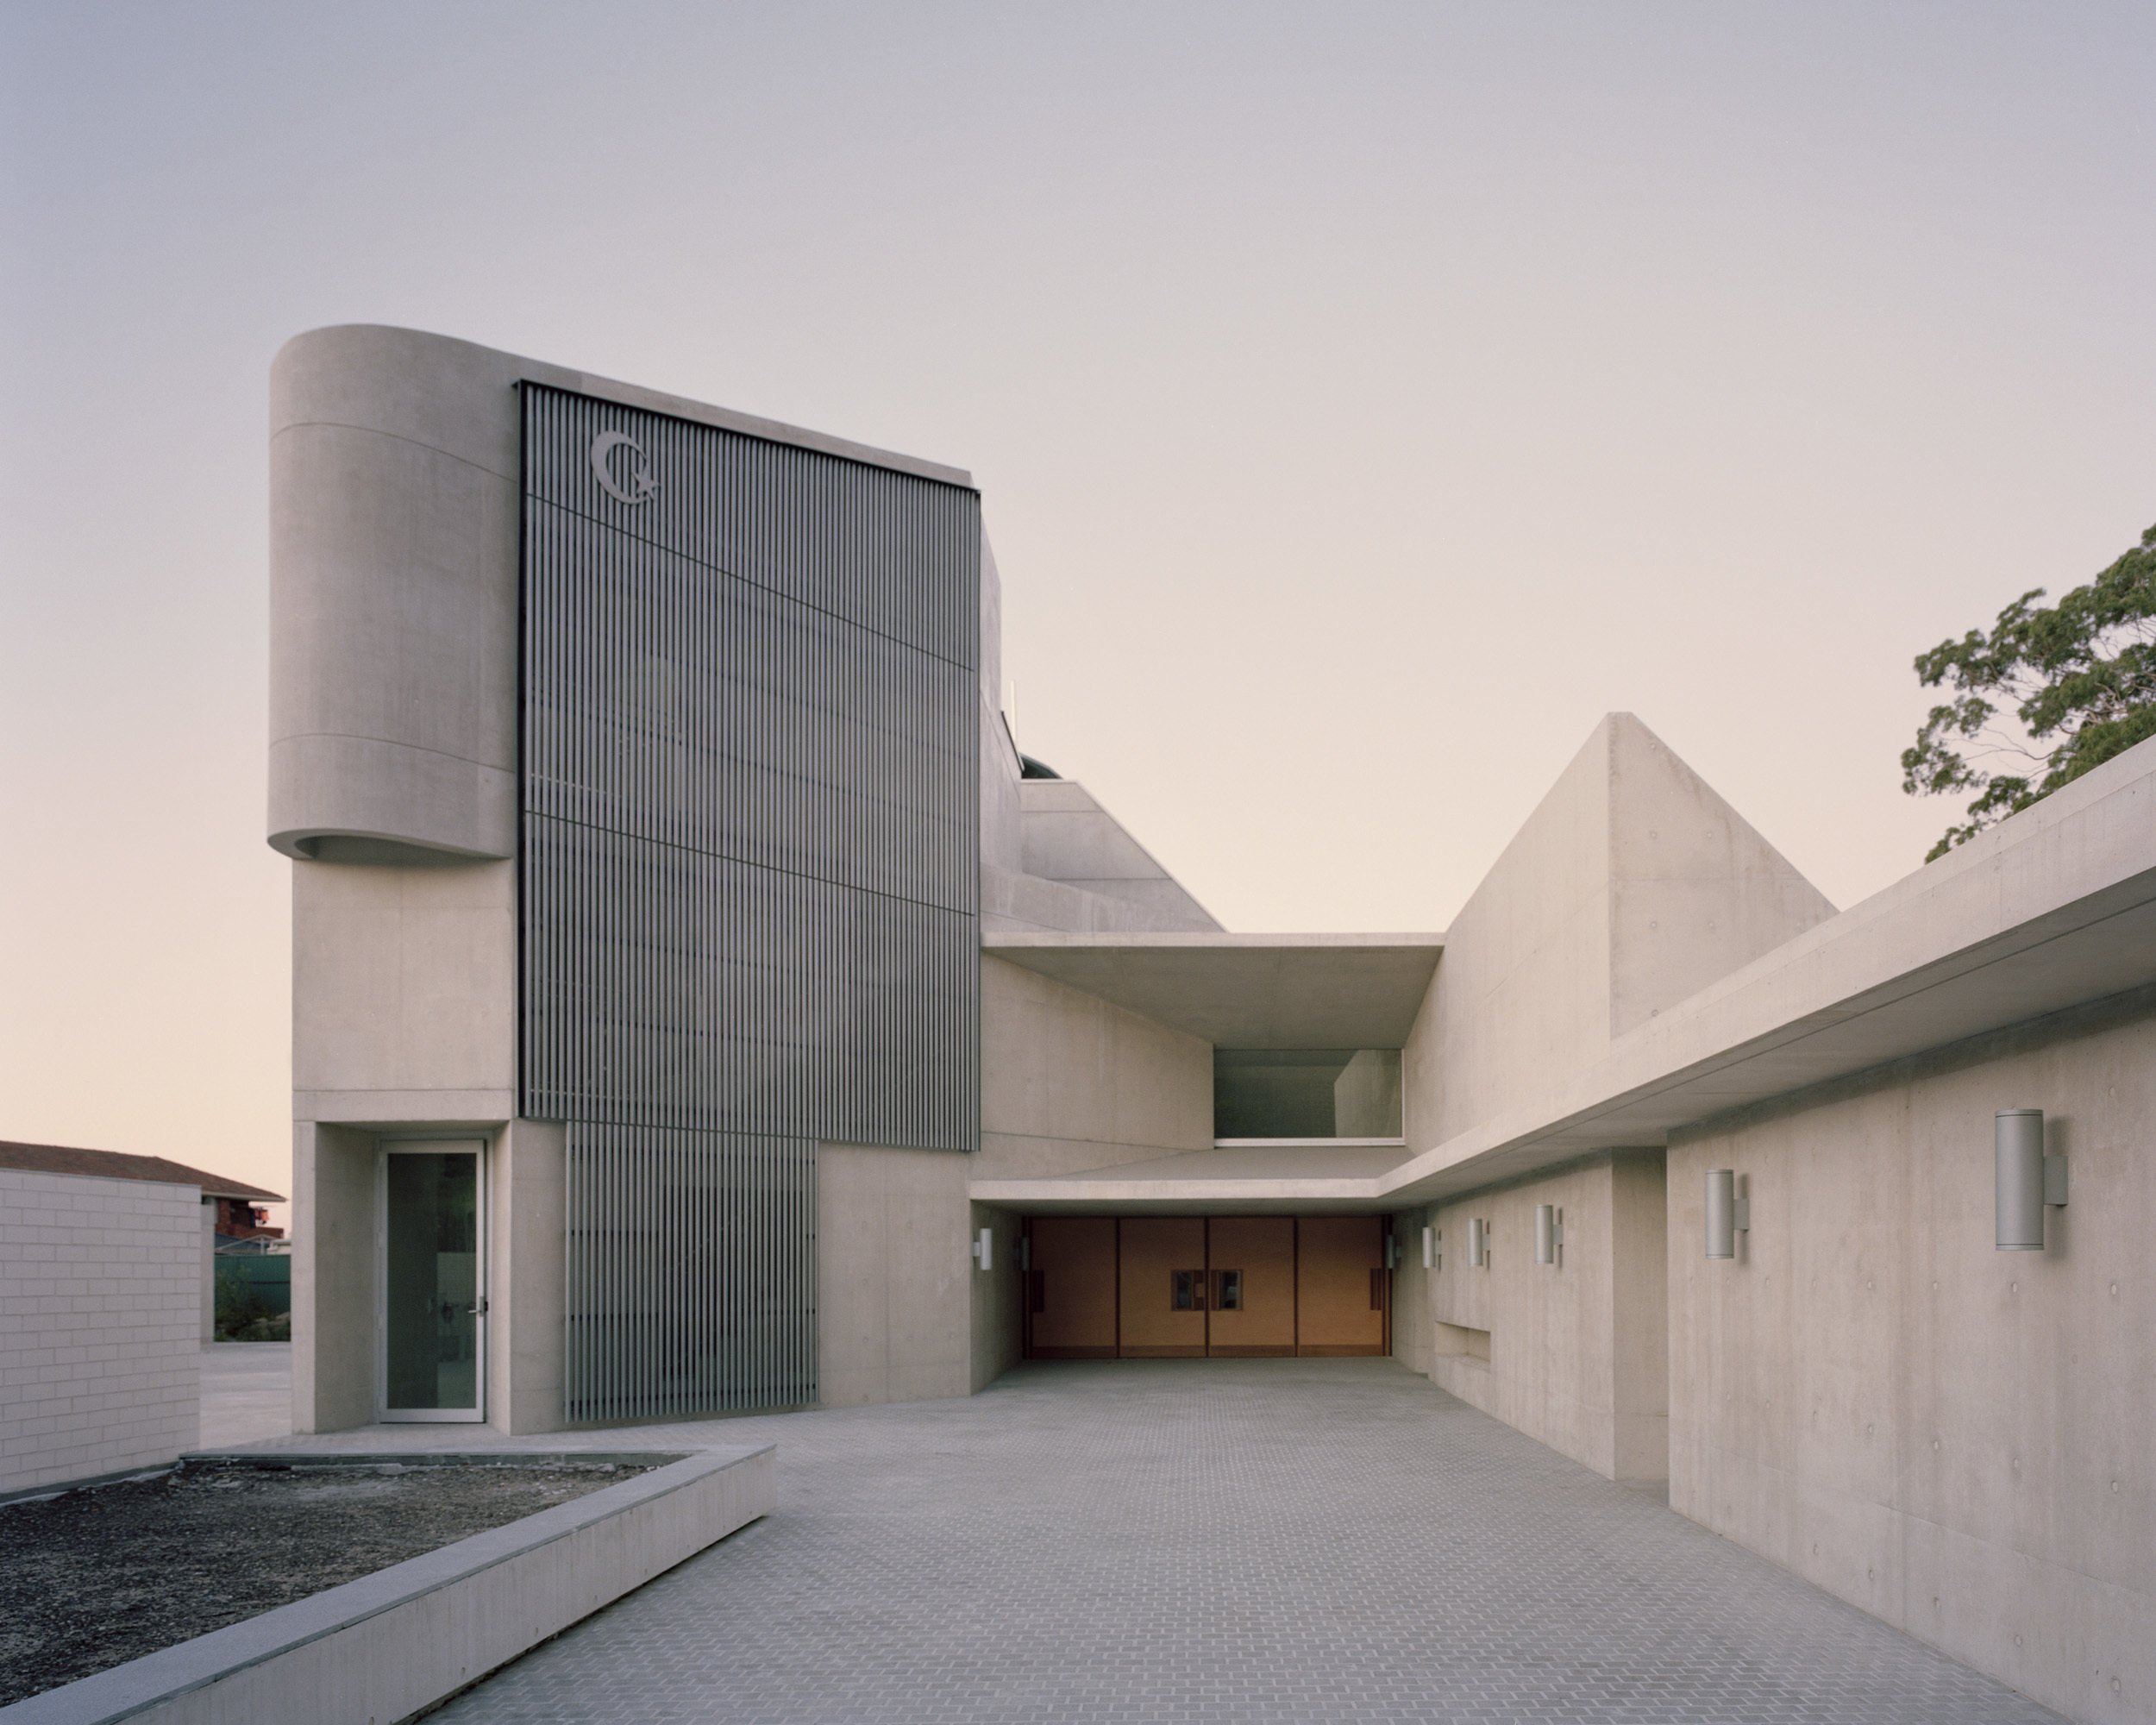 This modern concrete mosque in australia is an architectural